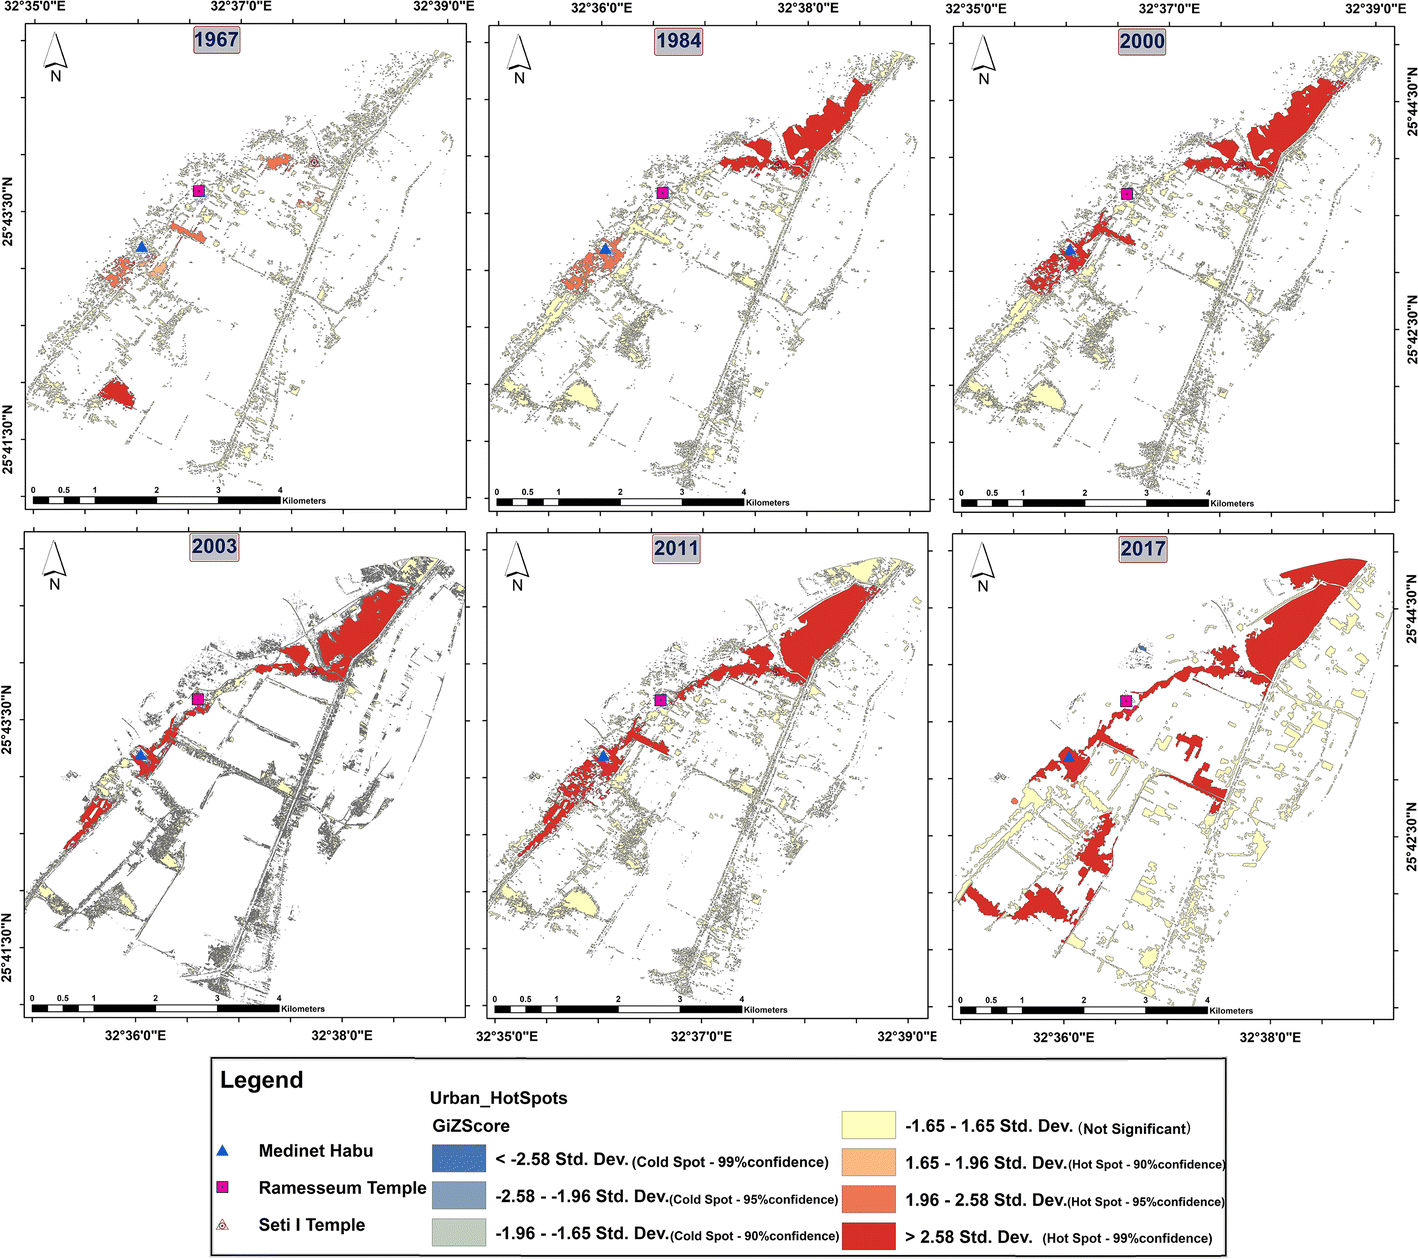 Management of Cultural Heritage Sites Using Remote Sensing Indices